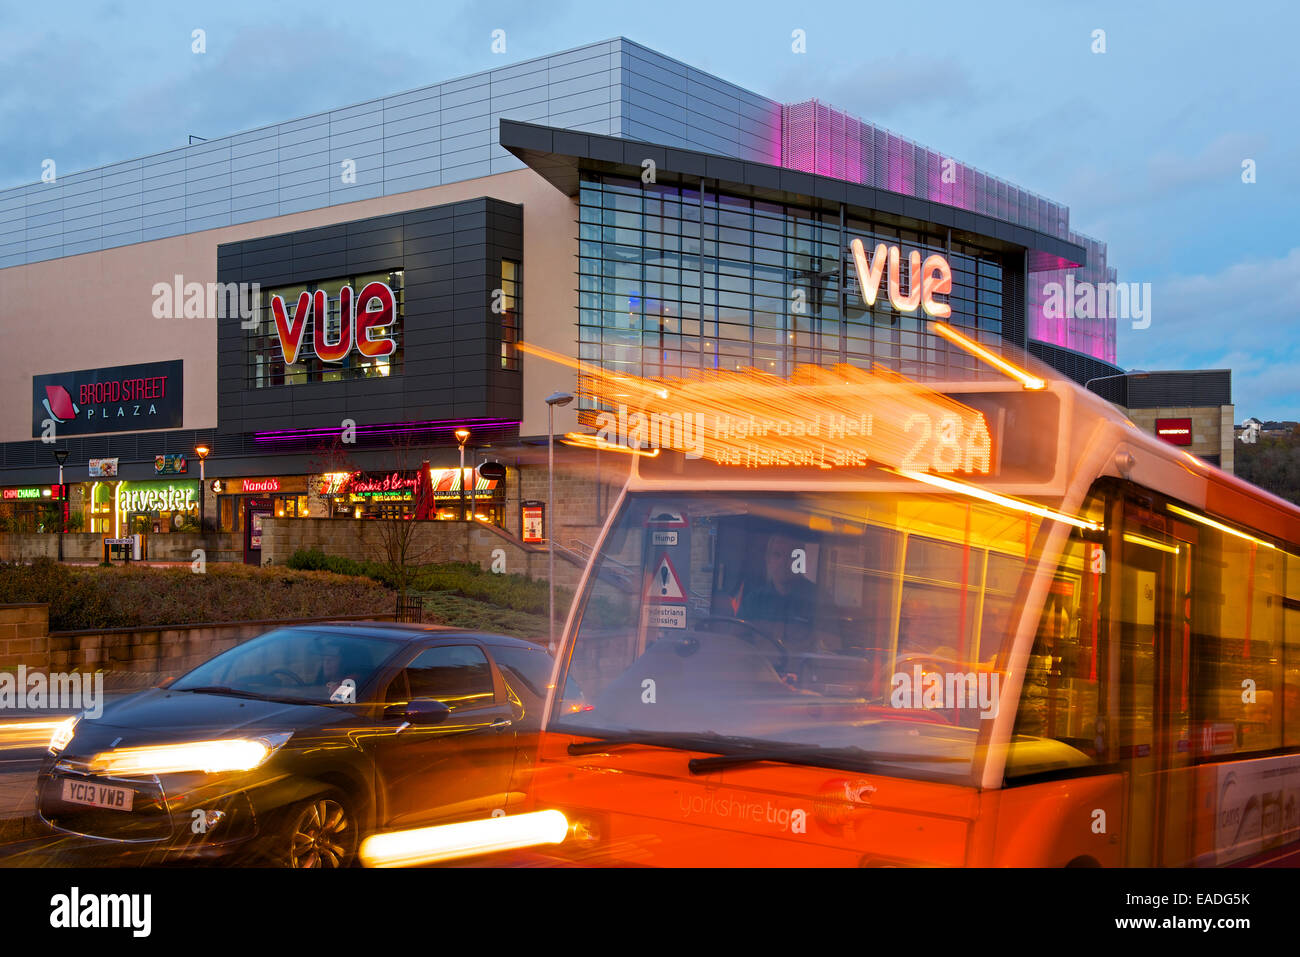 The Vue entertainment centre in Halifax, West Yorkshire, England UK - Stock Image